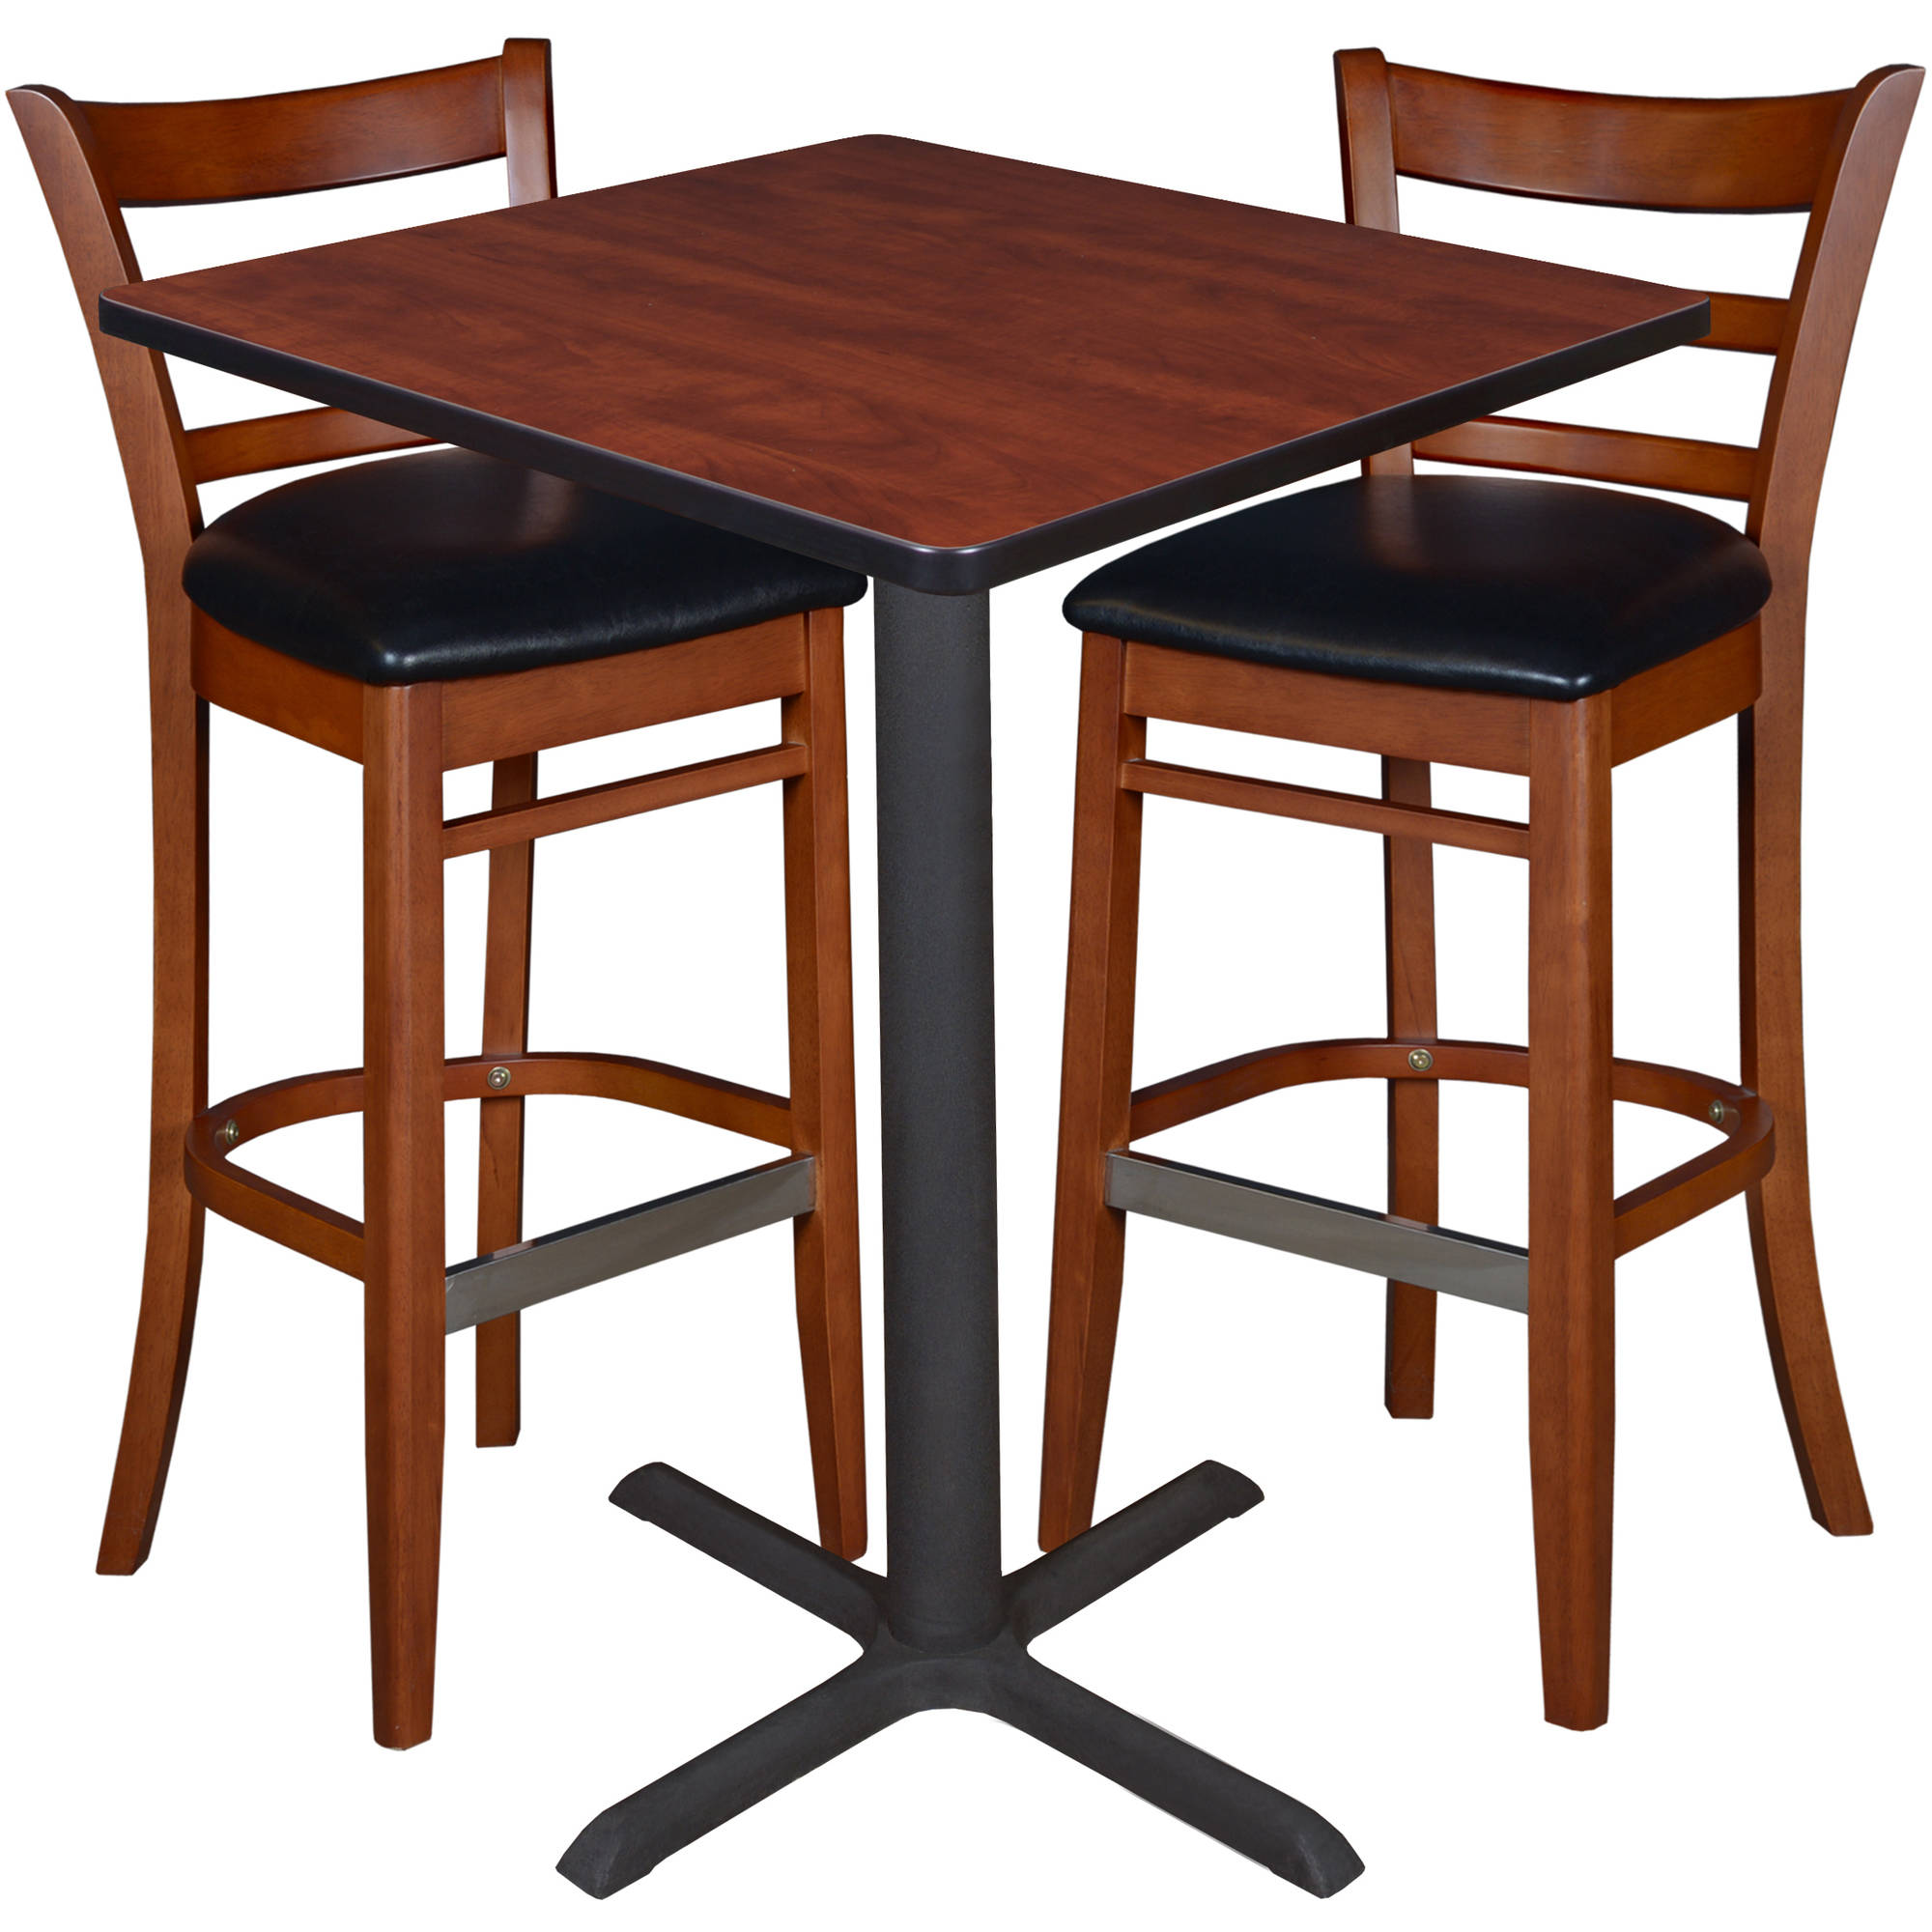 30 square caf table cherry 2 zoe caf stools cherry black